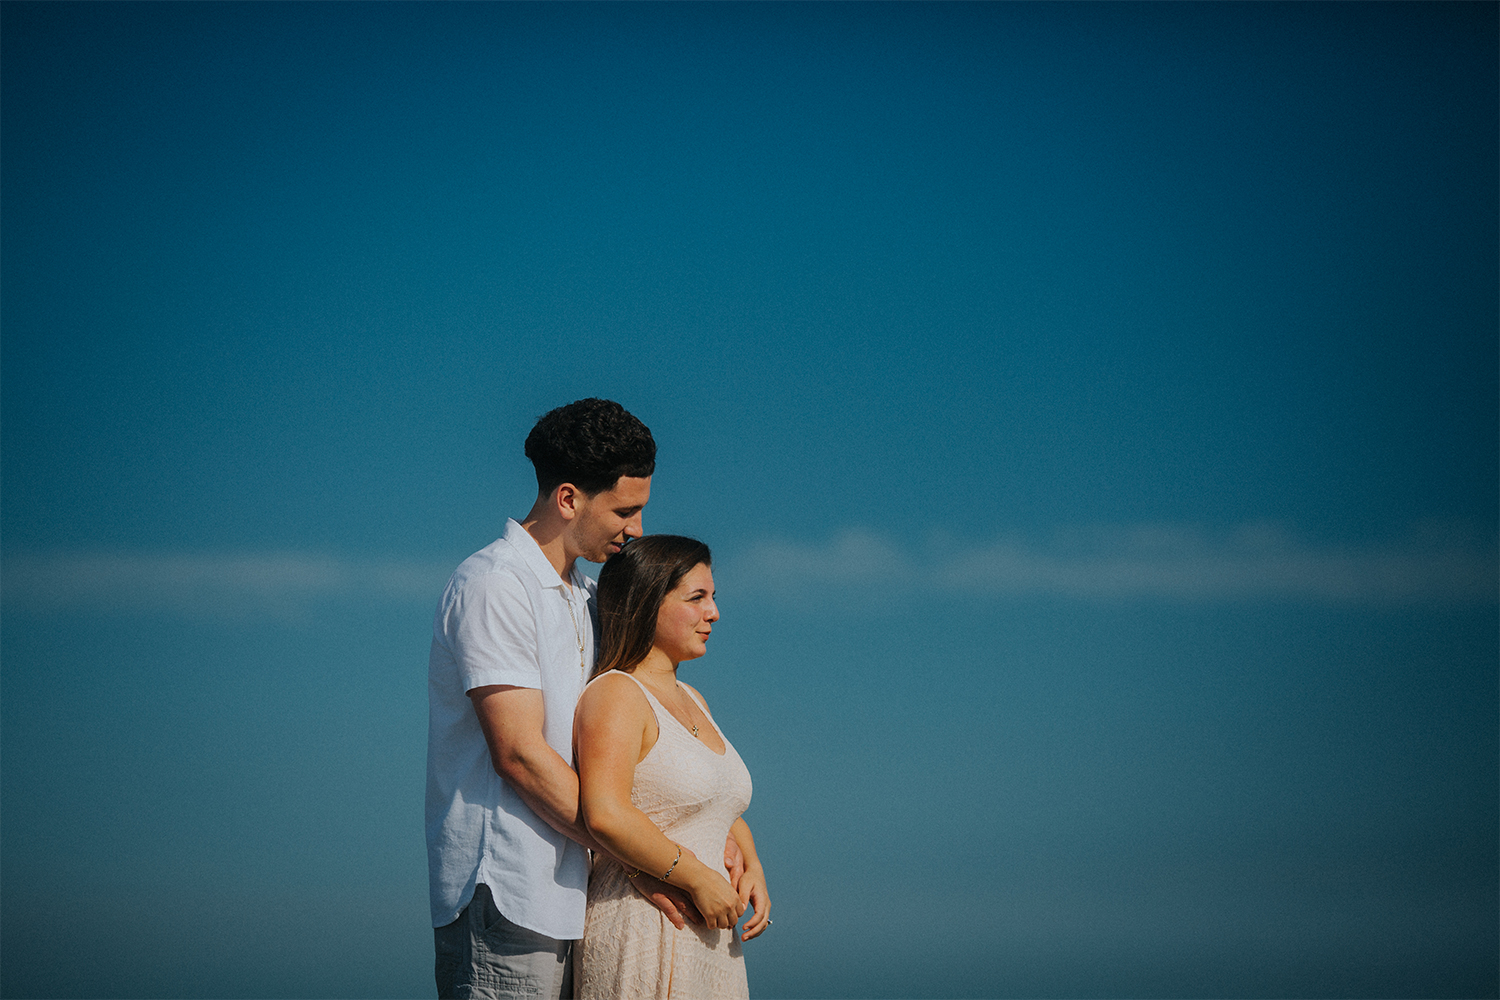 New_Jersey_Wedding_Photography_Engagement_Session_Beach_Session_Couple_006.jpg